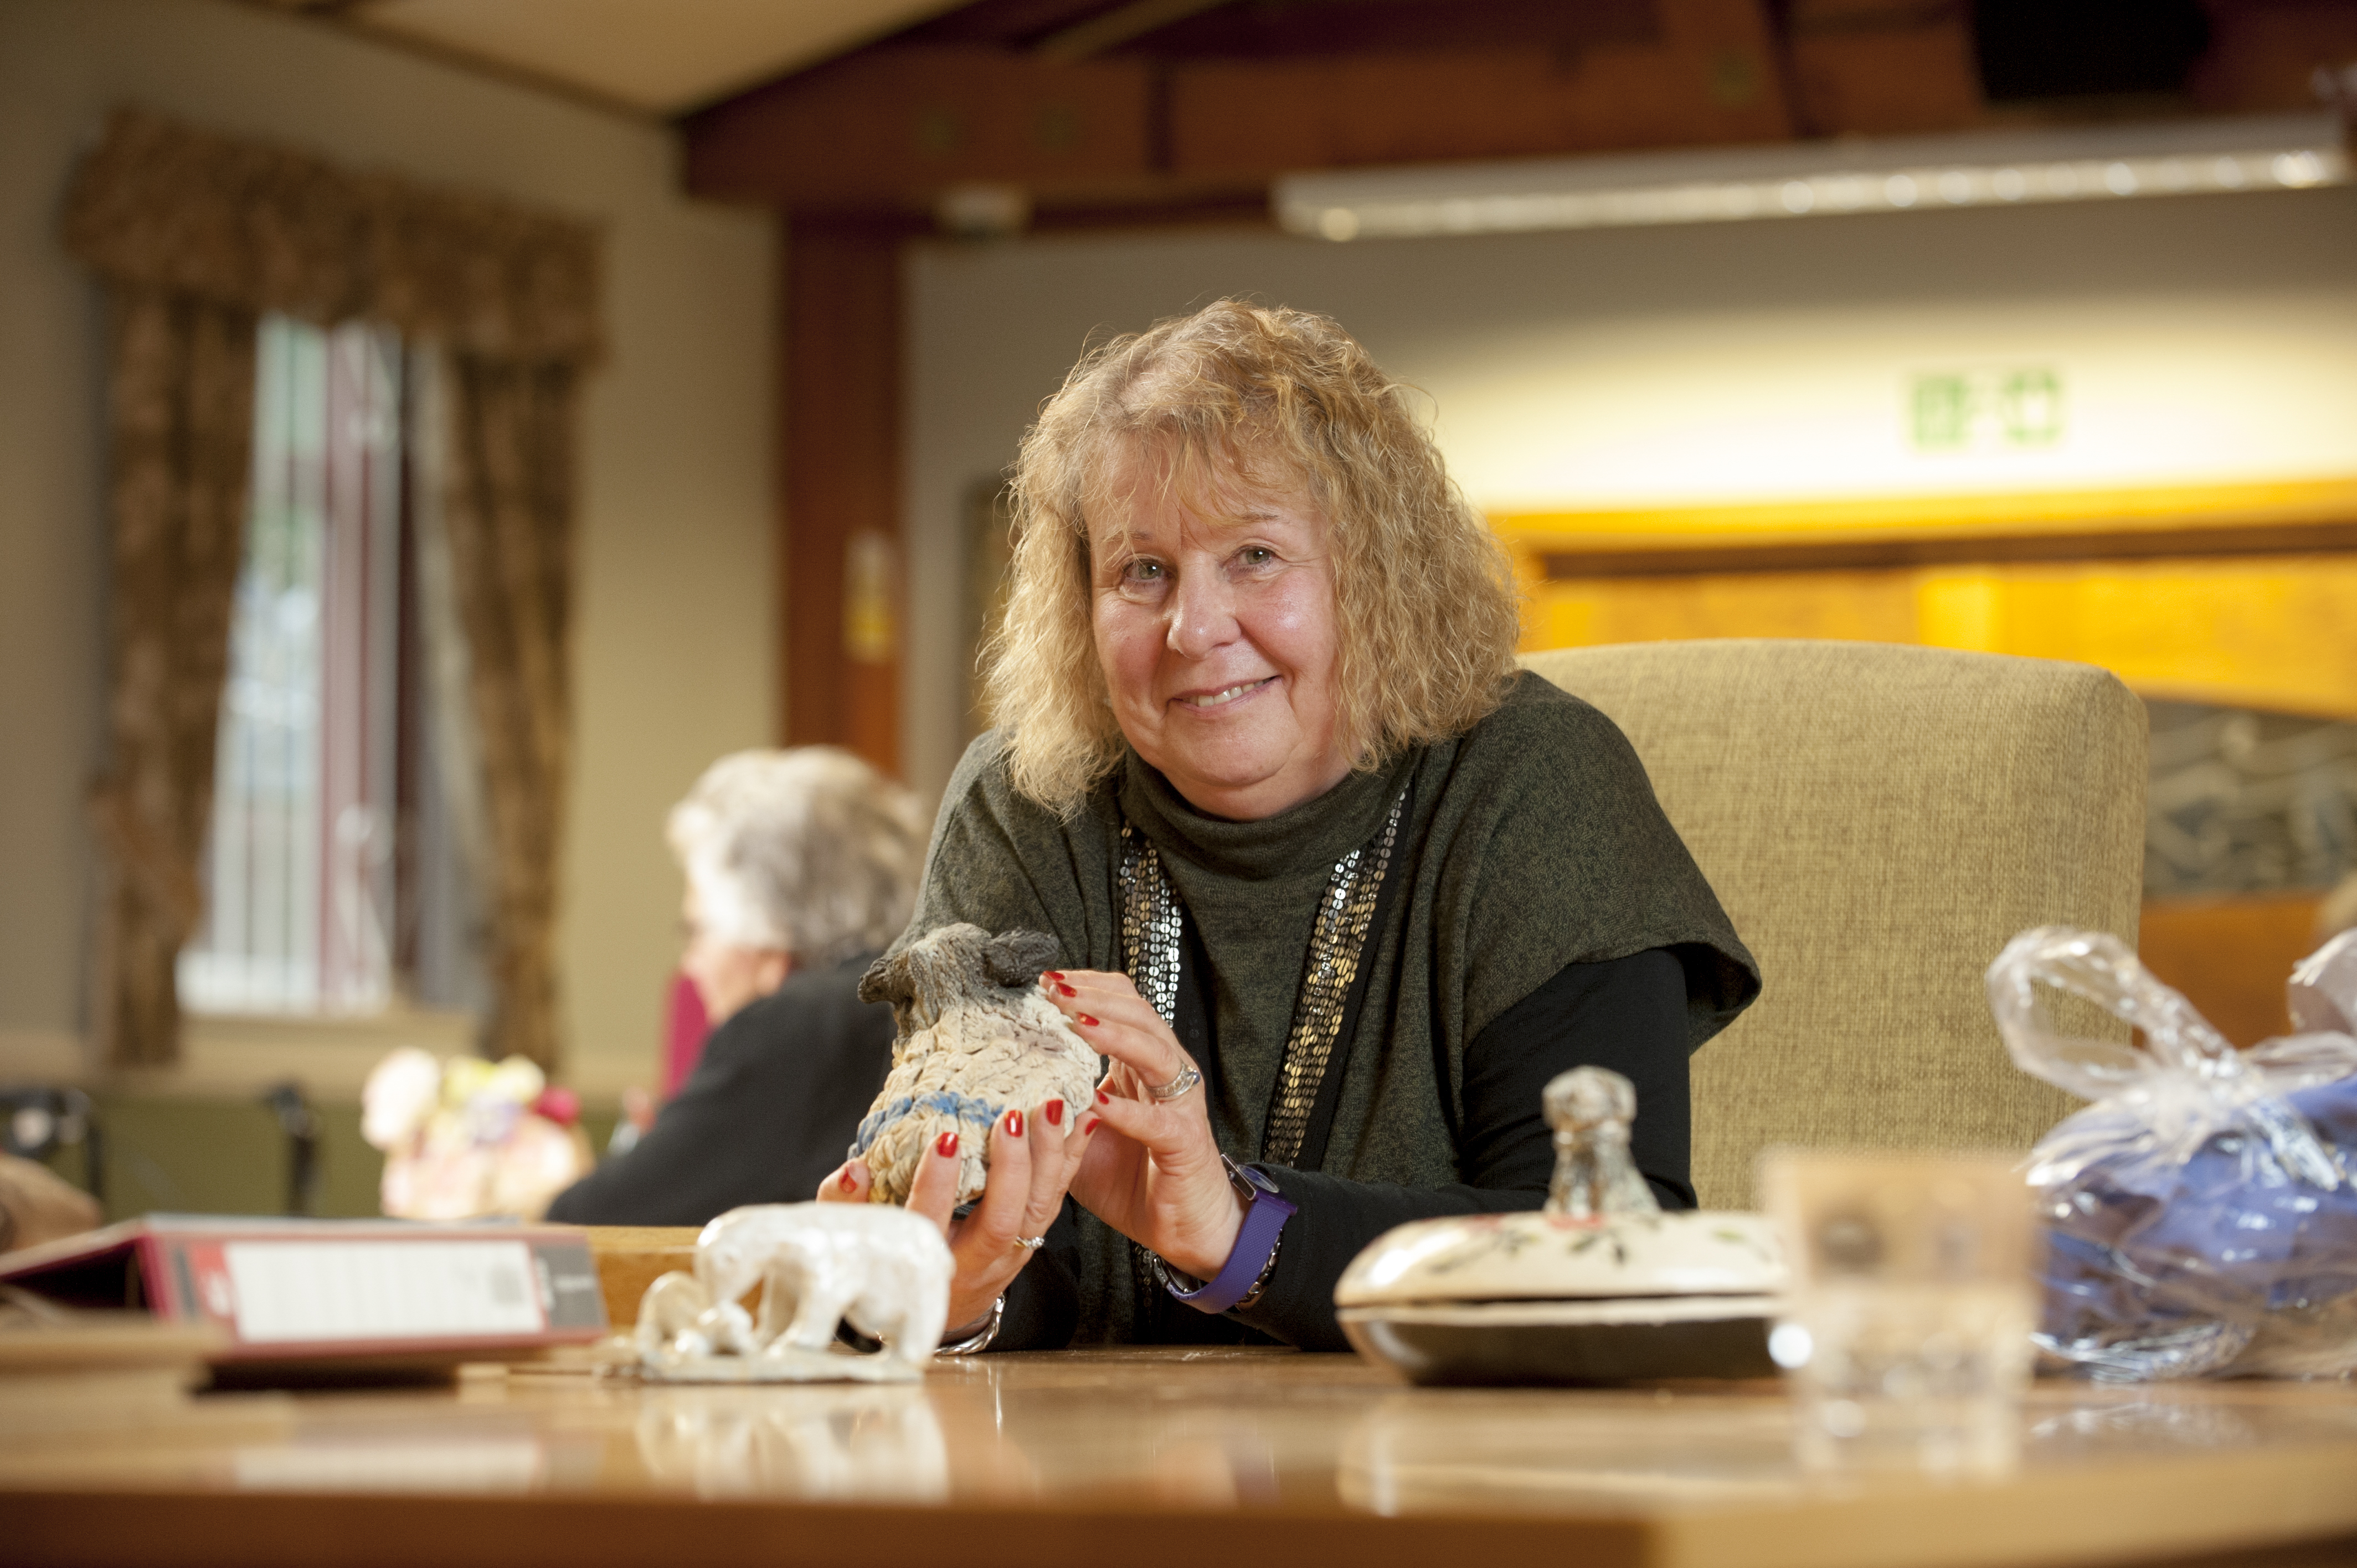 Pottery and ceramics at The Grange Day Centre and Club Venue, Throckley